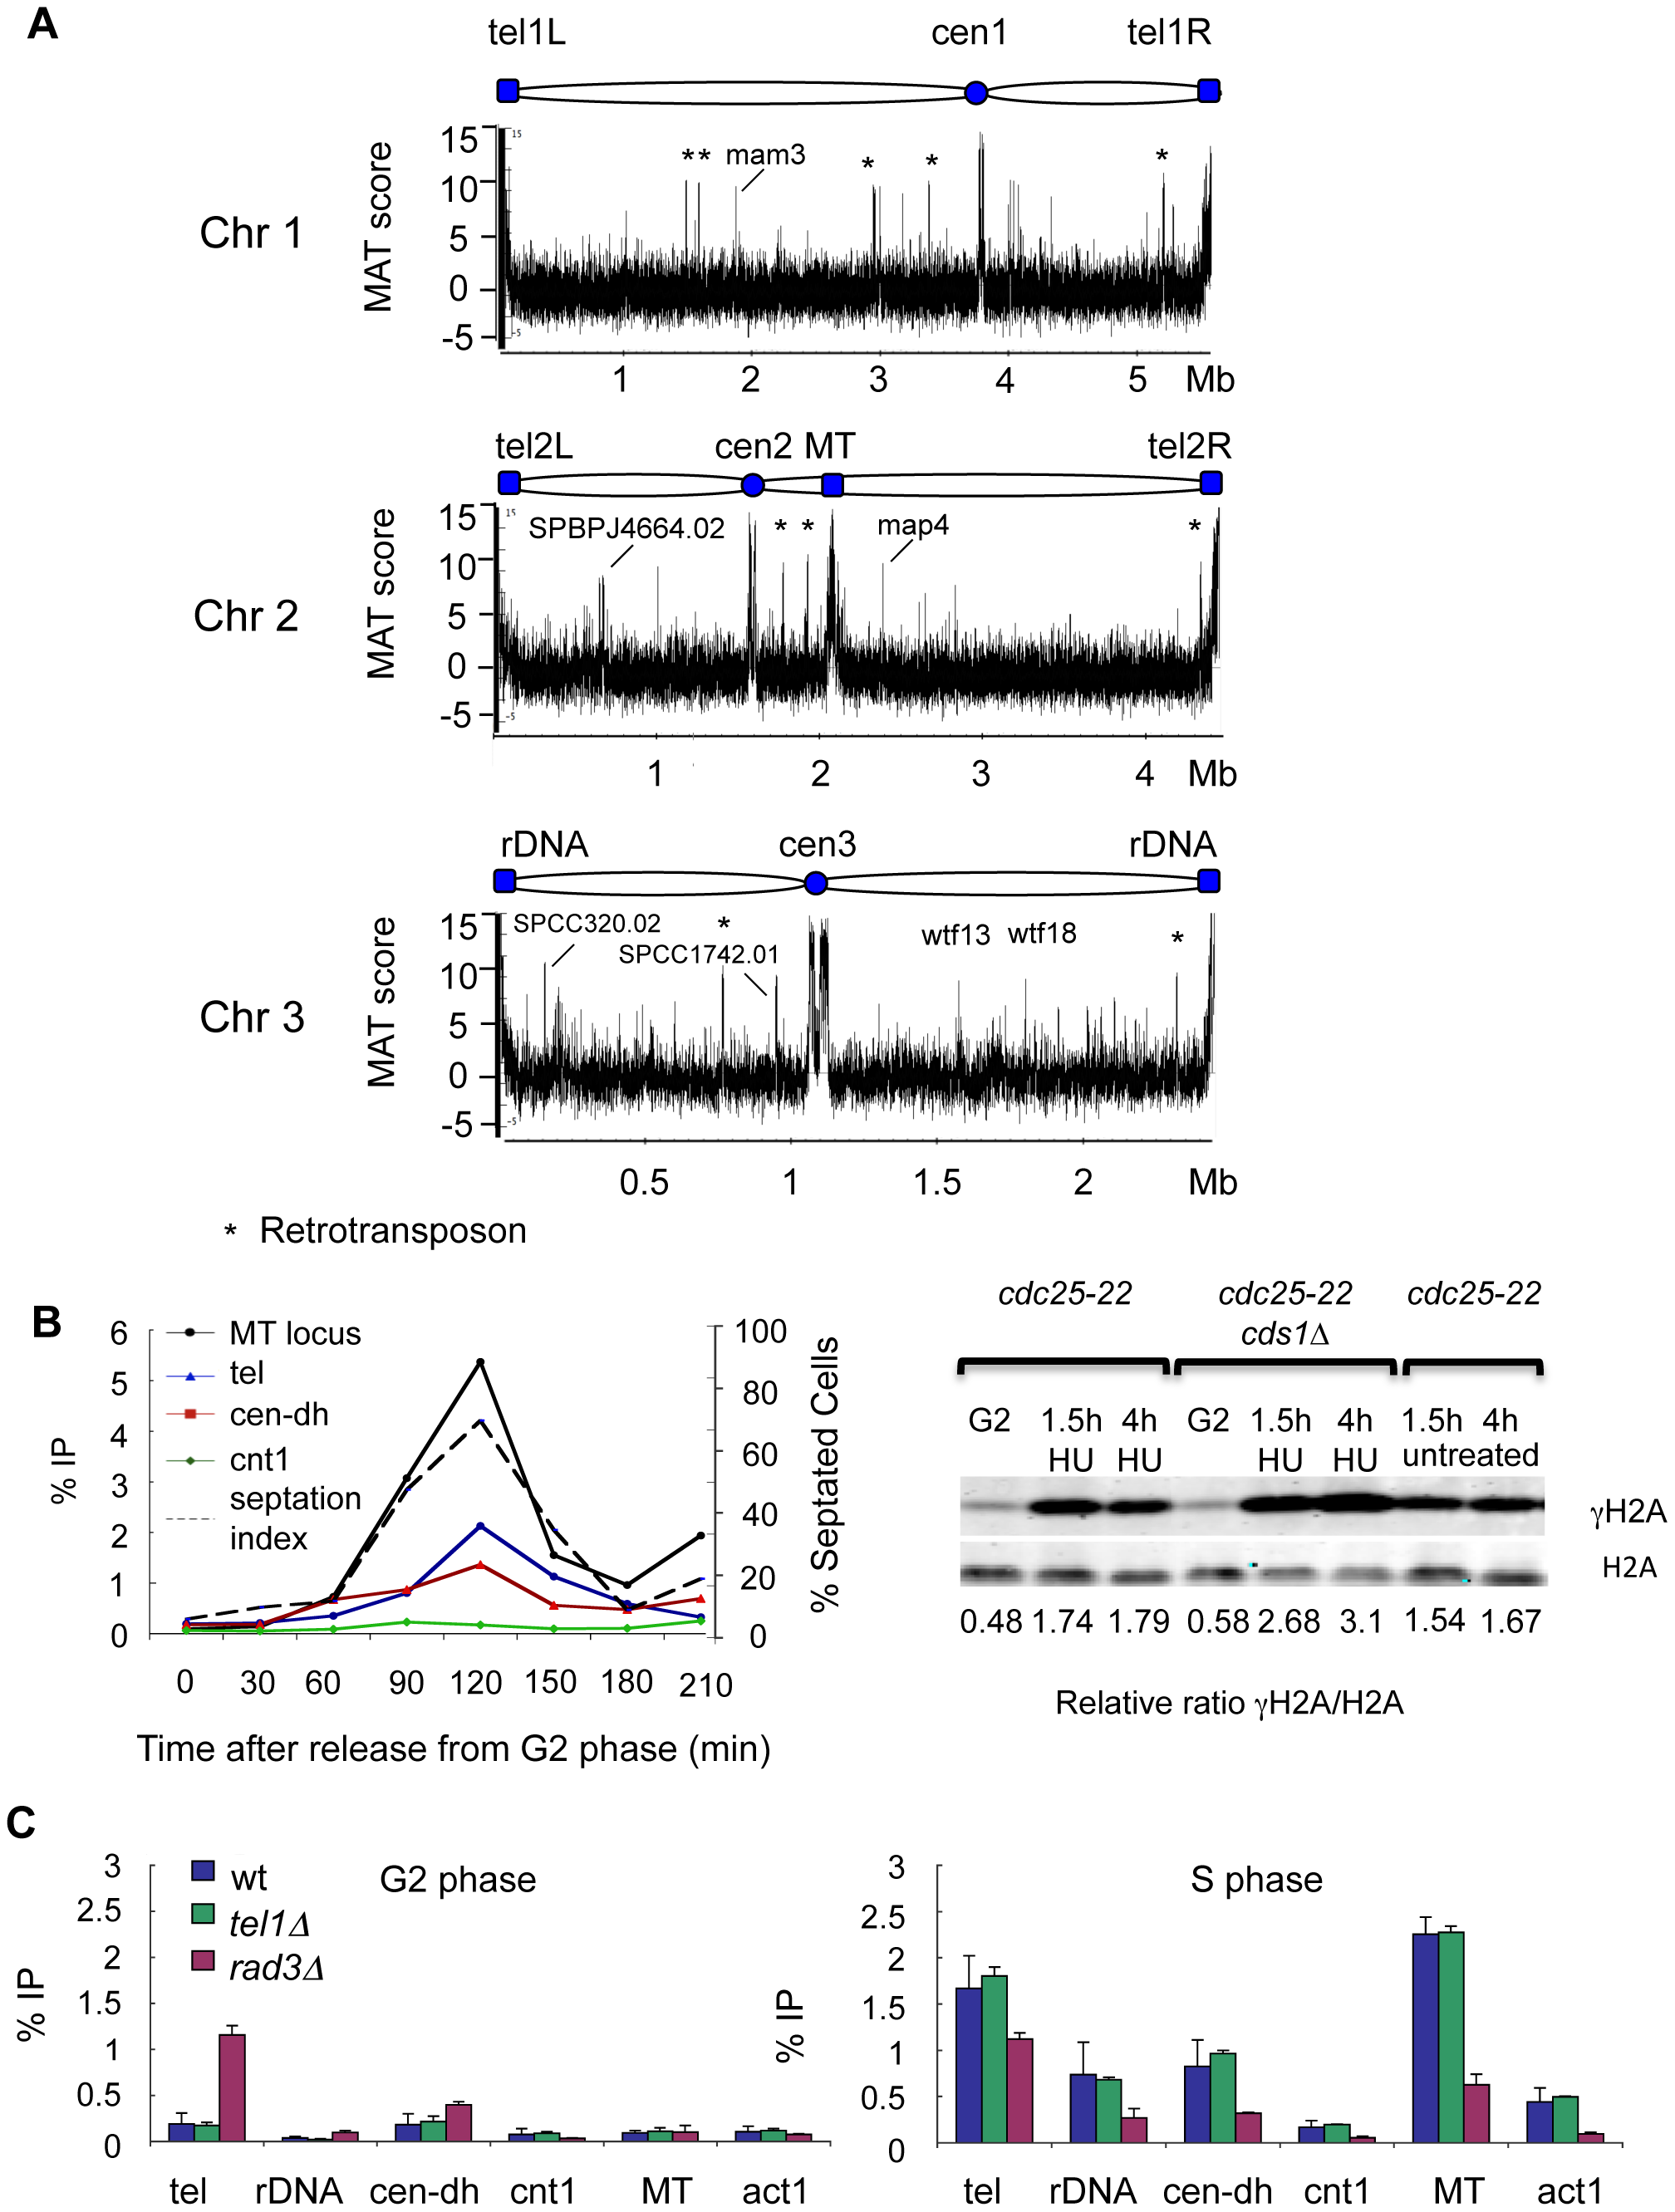 Genome-wide localization of γH2A during DNA replication.